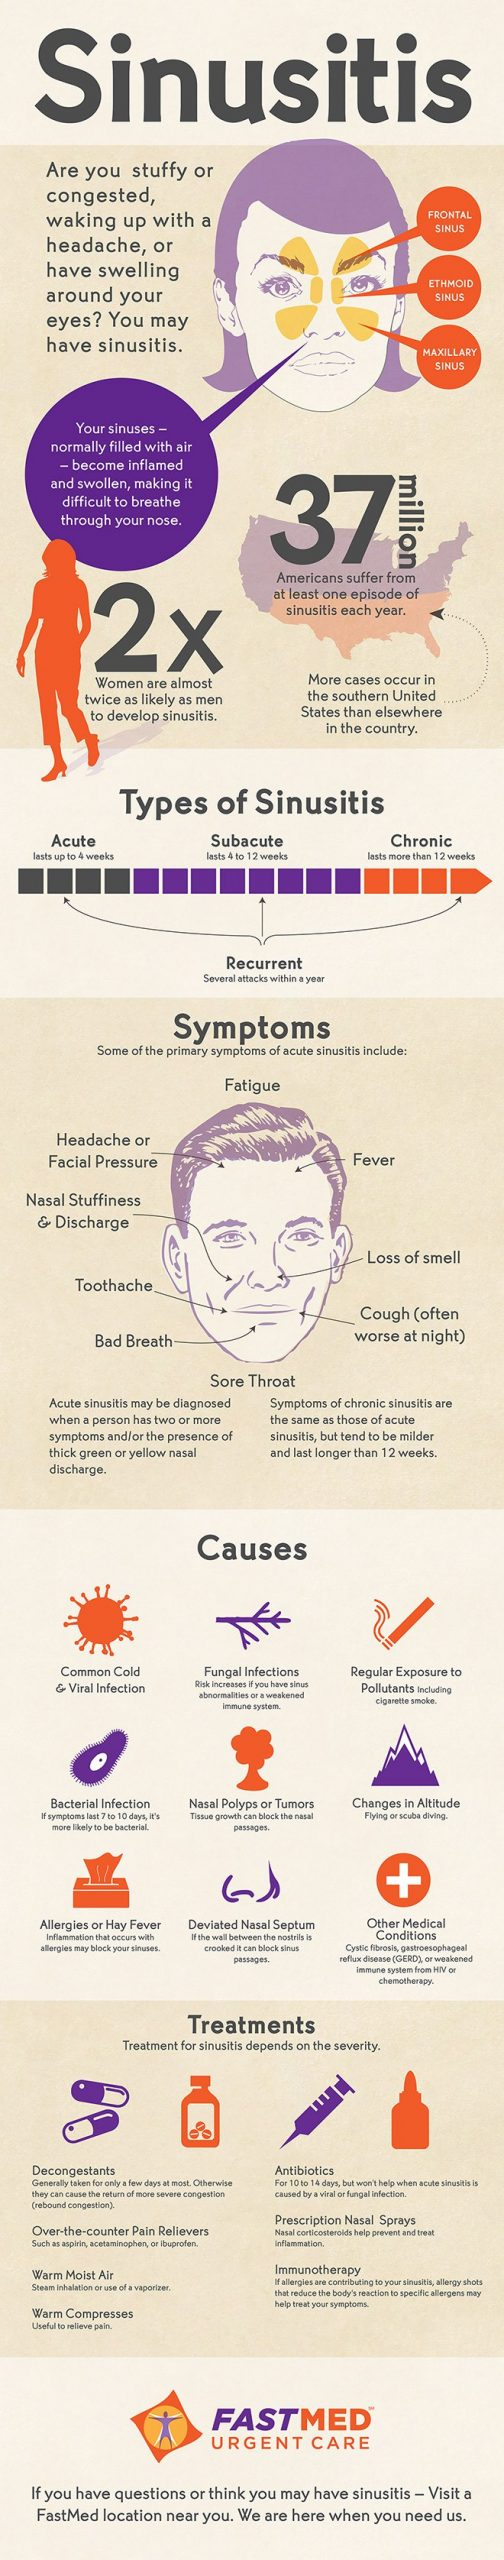 Sinusitis Infographic Summary of Facts and Stats!